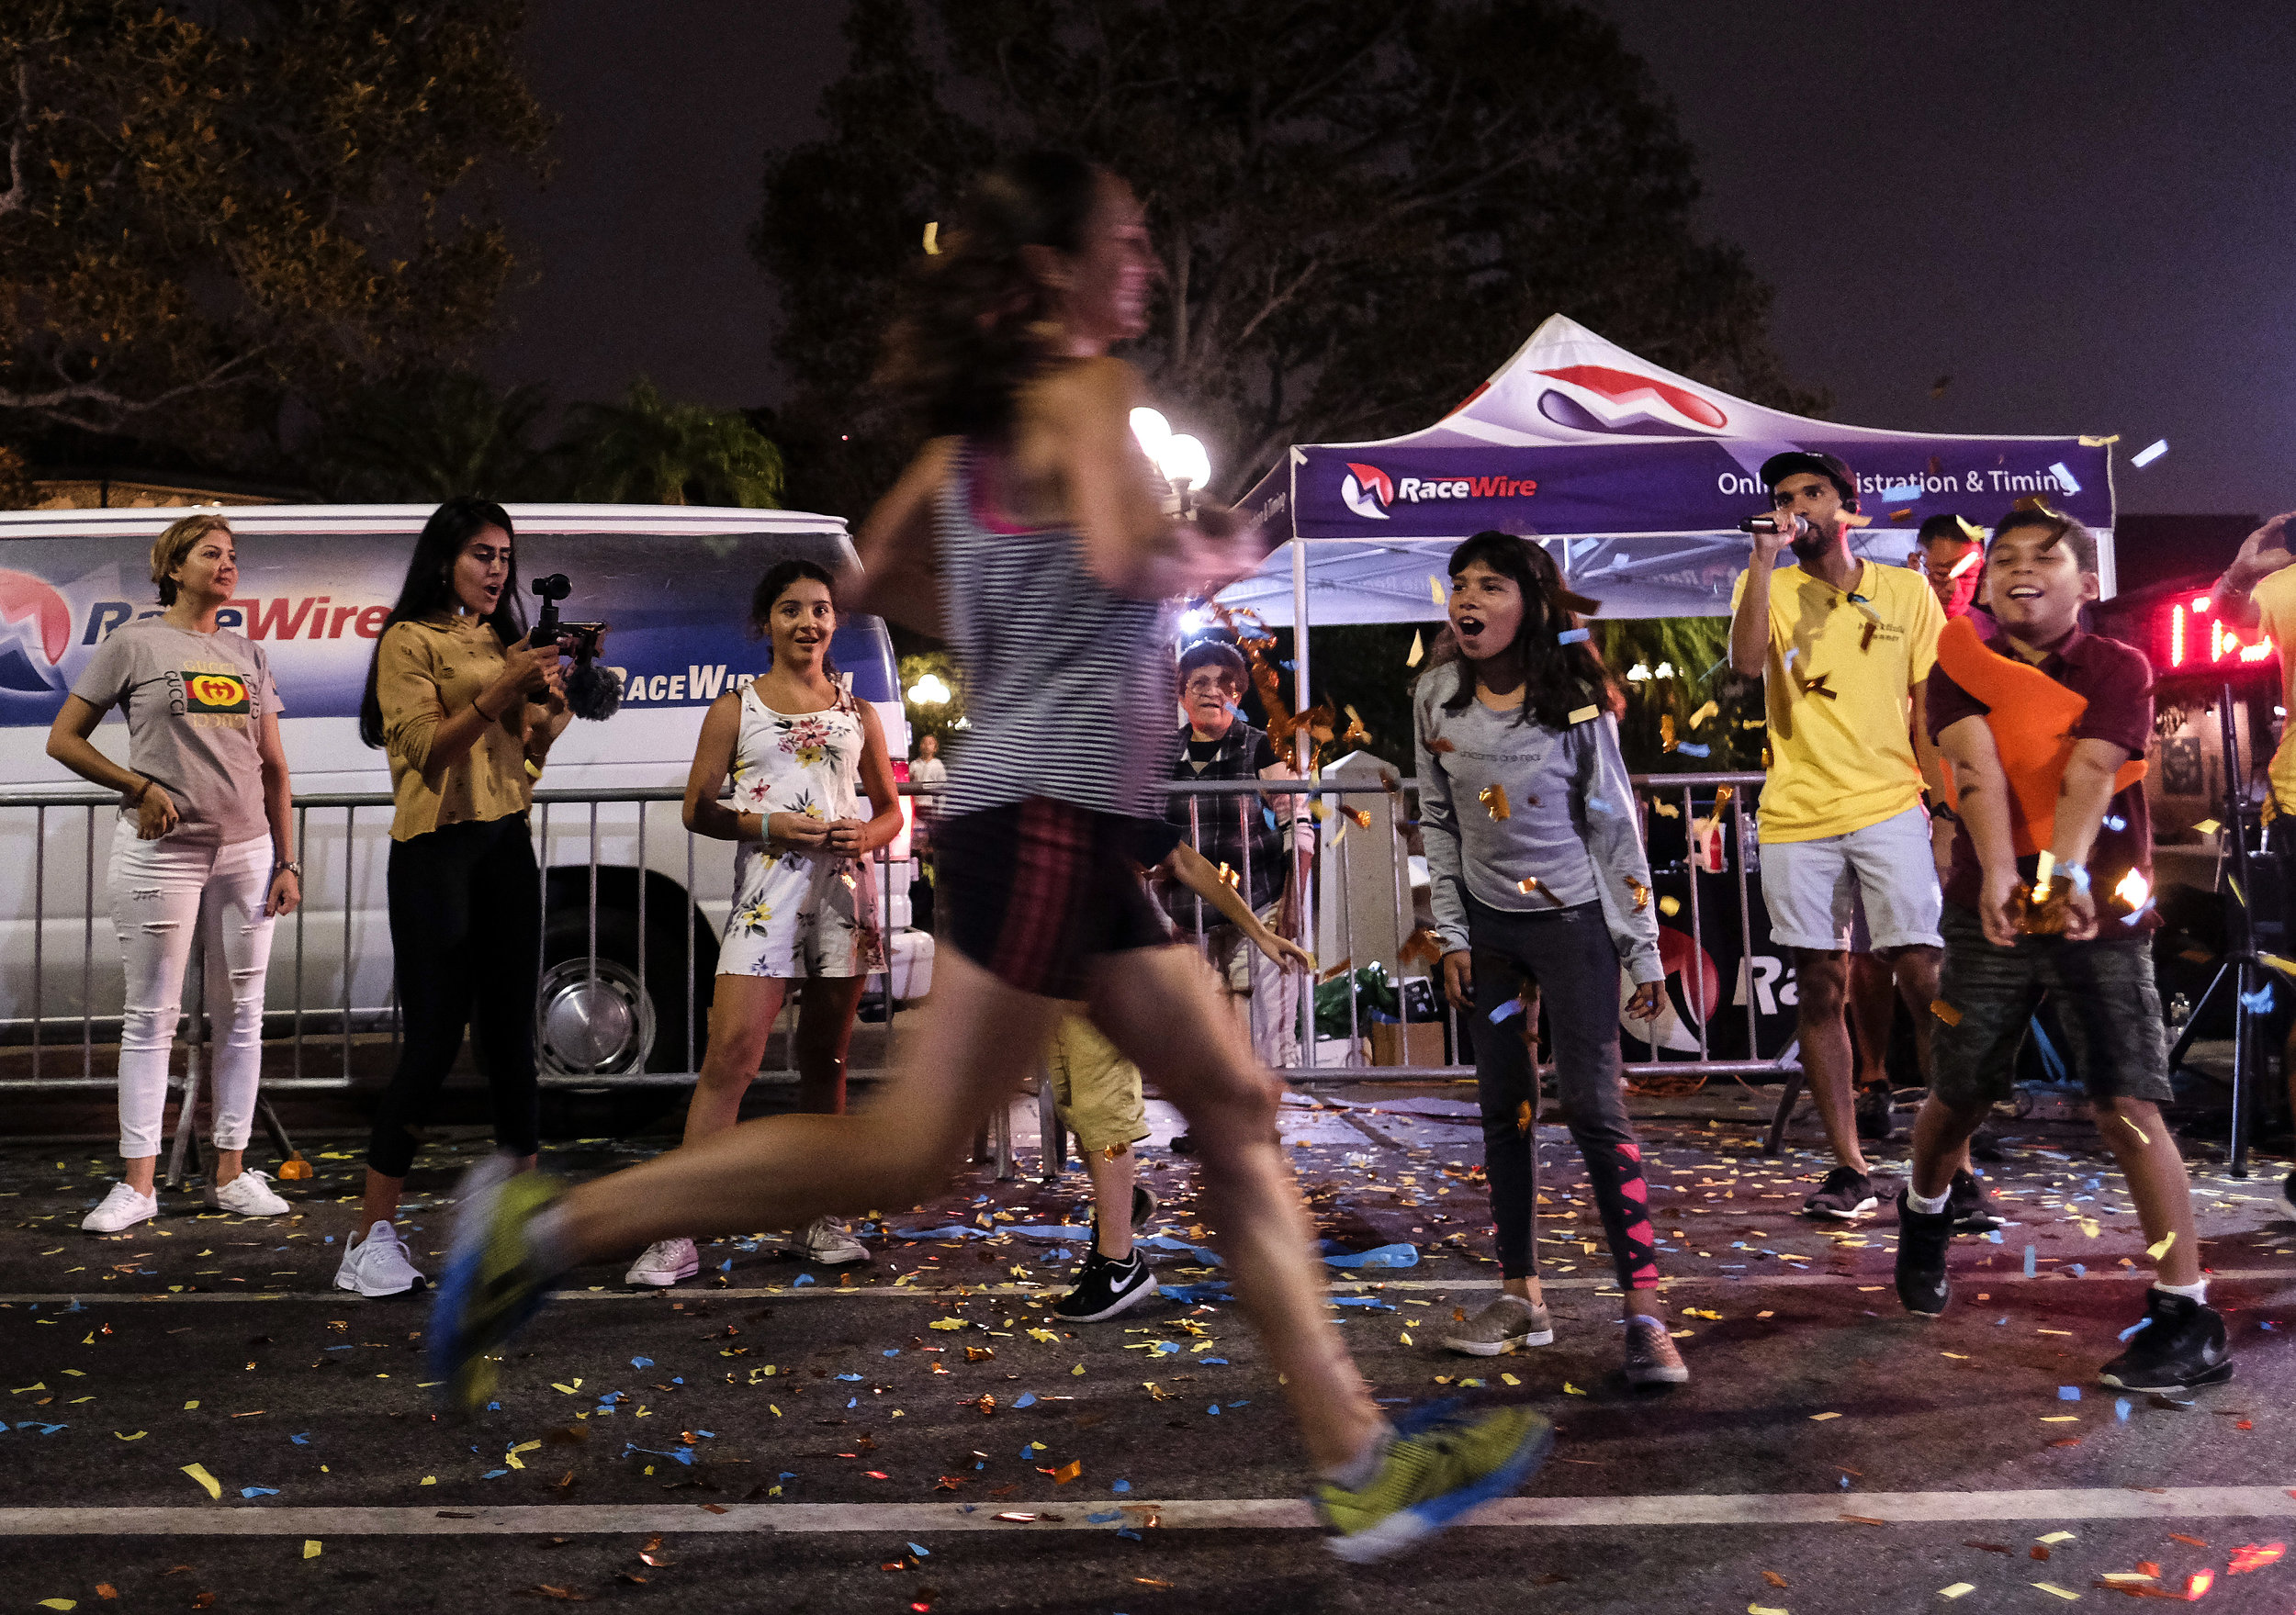 People cheer on runners during the ``Happy Birthday L.A. 5K 2018'' in downtown Los Angeles, the United States on Sept. 2, 2018. Thousands of runners participated in the event to commemorate the Los Angeles City's 237th birthday.